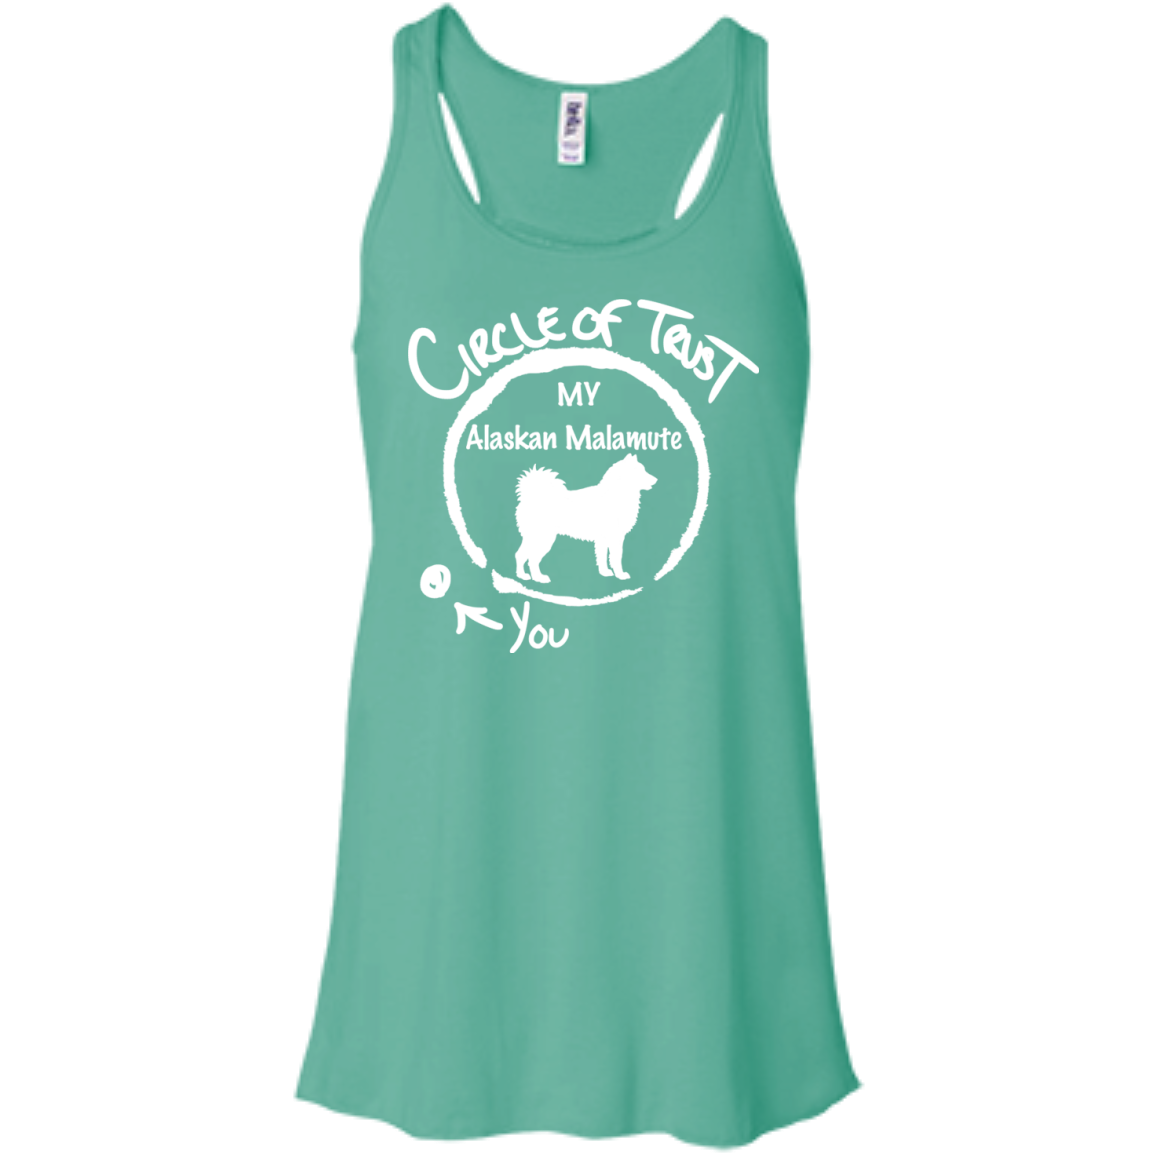 Circle Of Trust My Alaskan Malamute You Flowy Racerback Tanks